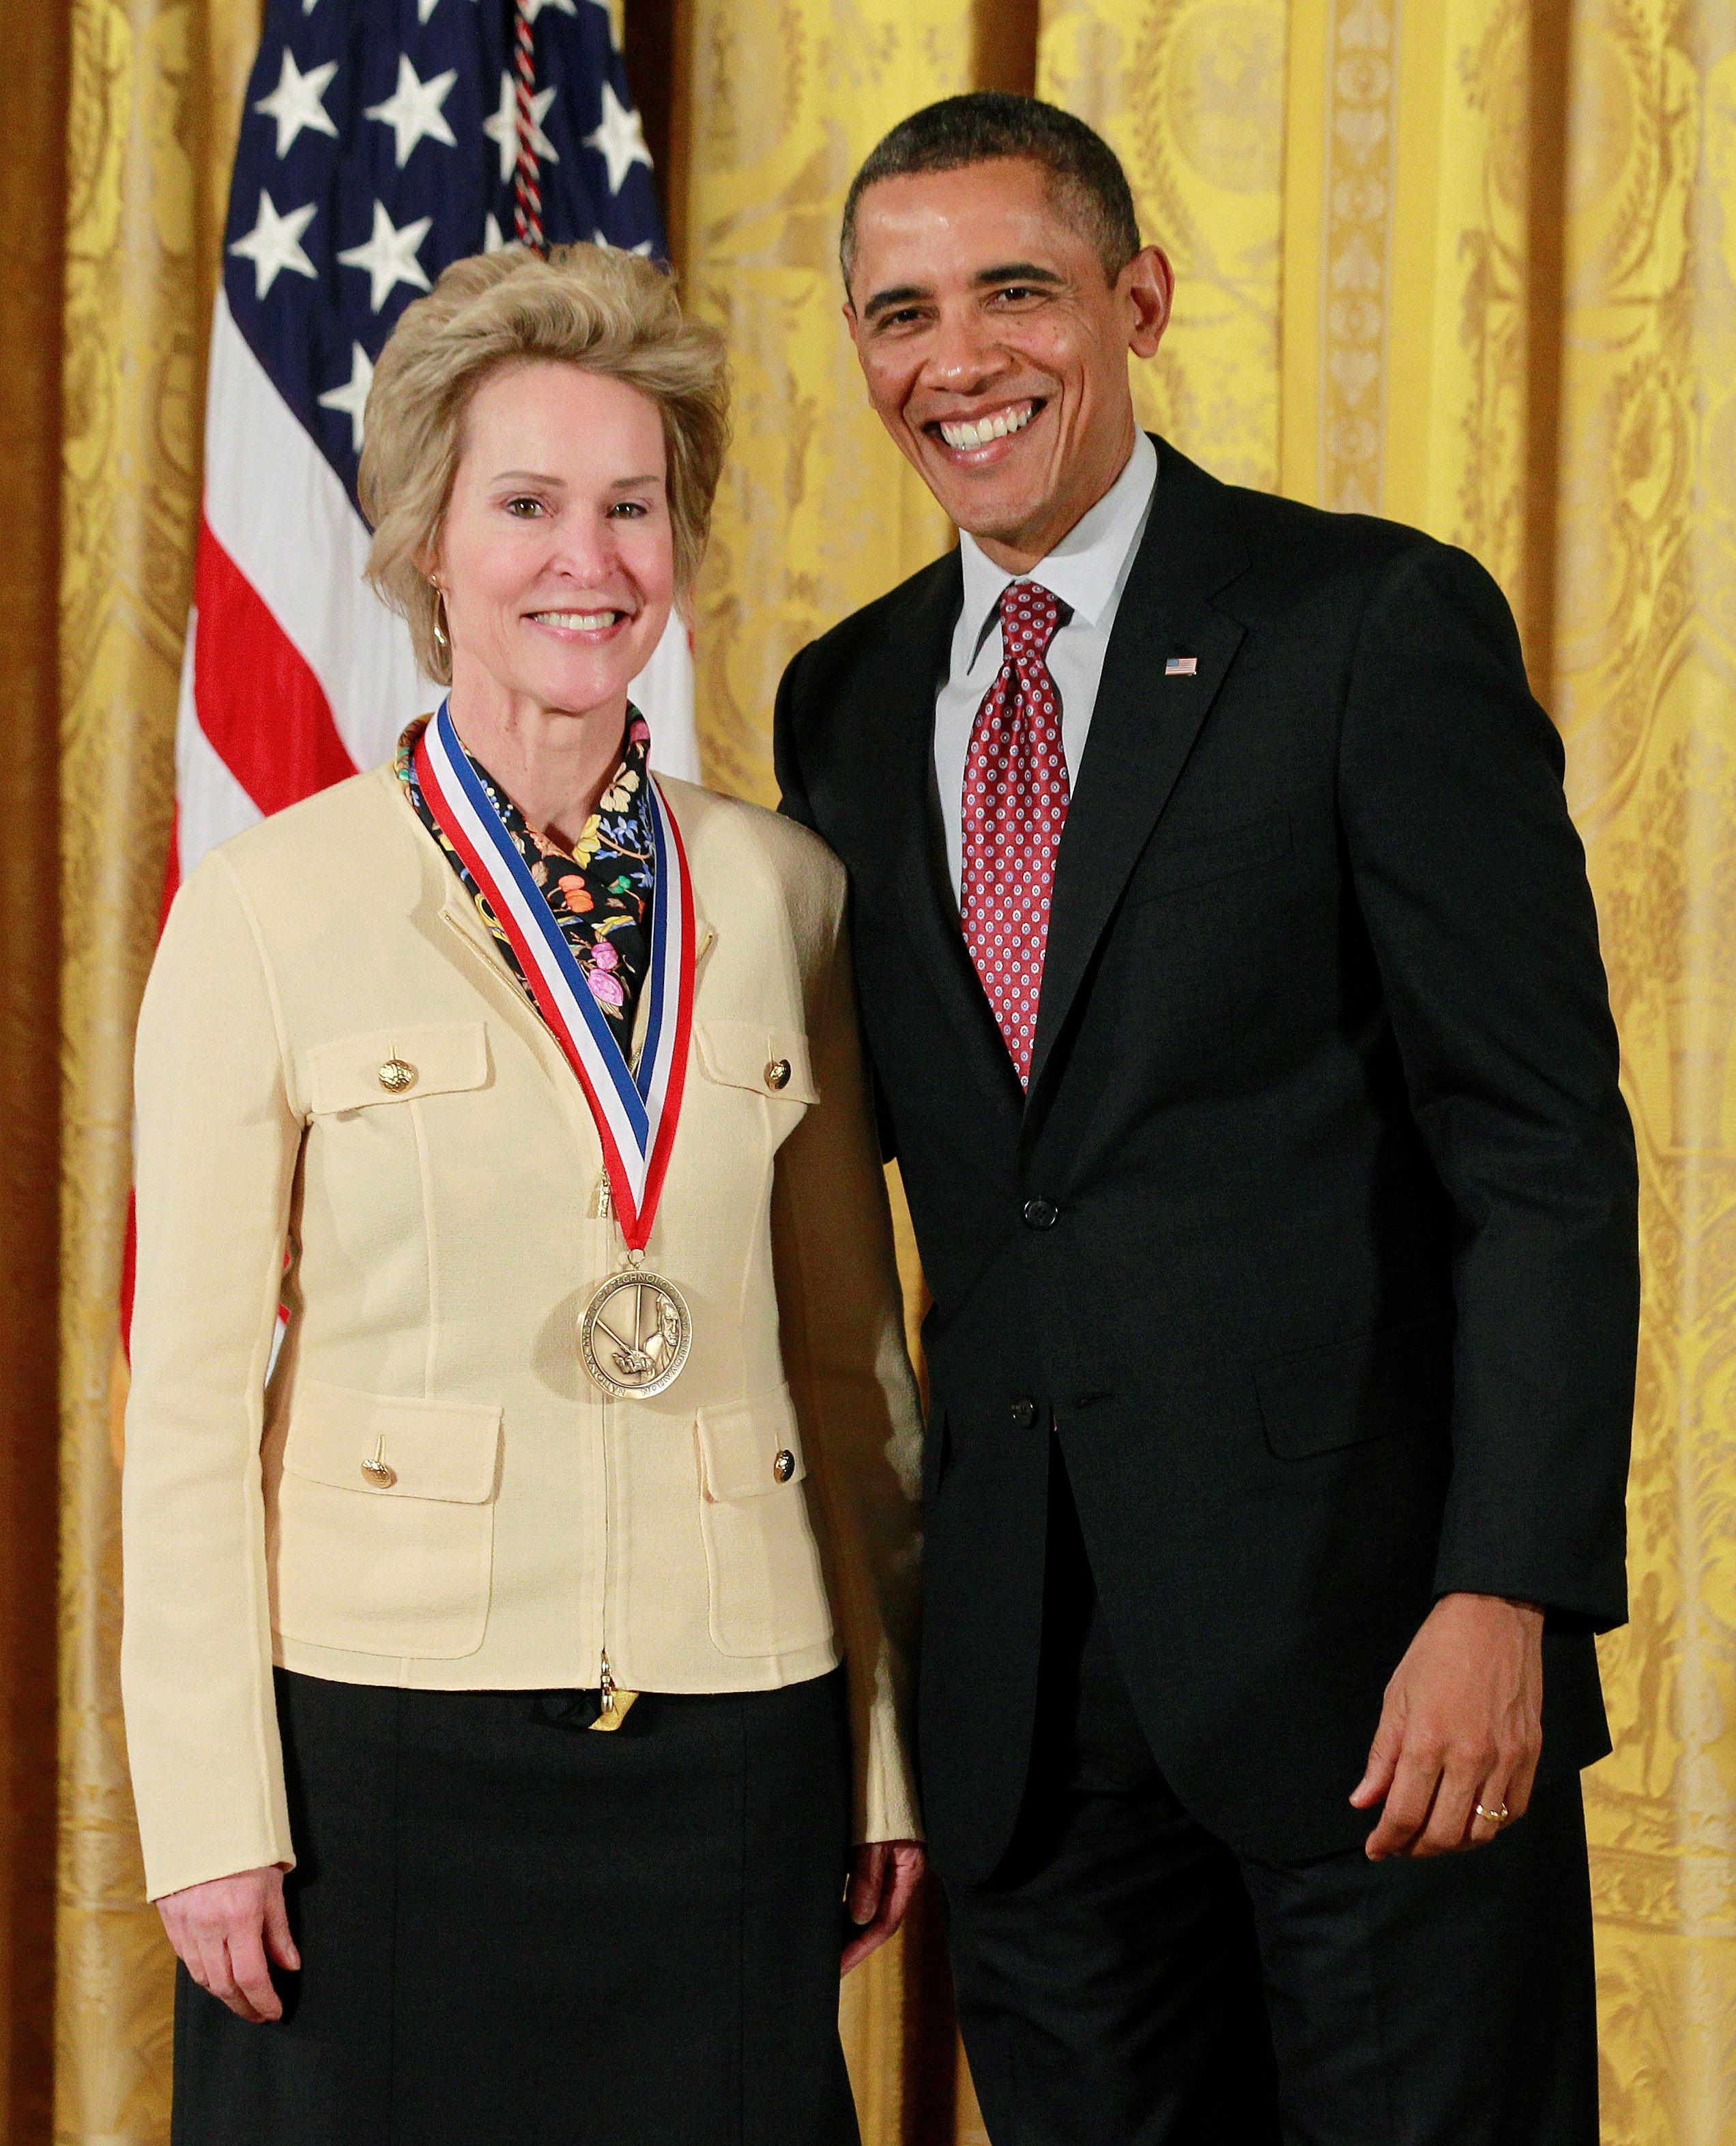 U.S. President Barack Obama presents the National Medal of Technology and Innovation to Dr. Frances Arnold from the California Institute of Technology during a ceremony in the East Room of the White House in Washington, February 1, 2013. Jason Reed